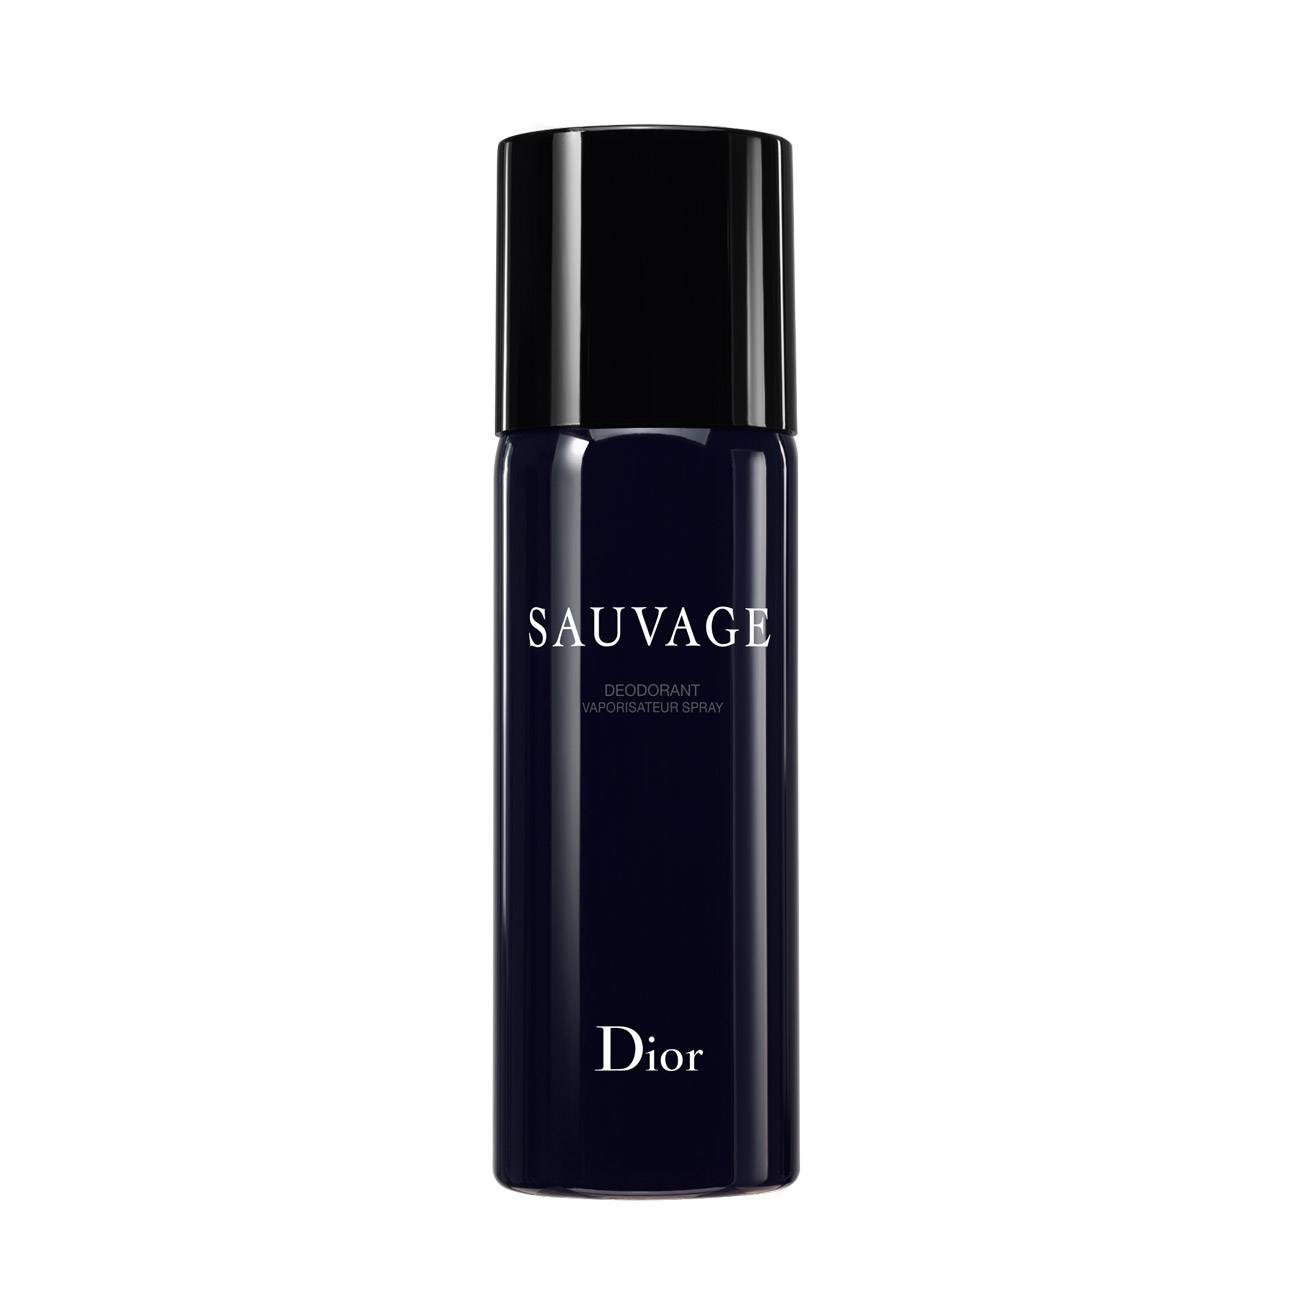 SAUVAGE DEODORANT SPRAY 150 Ml poza